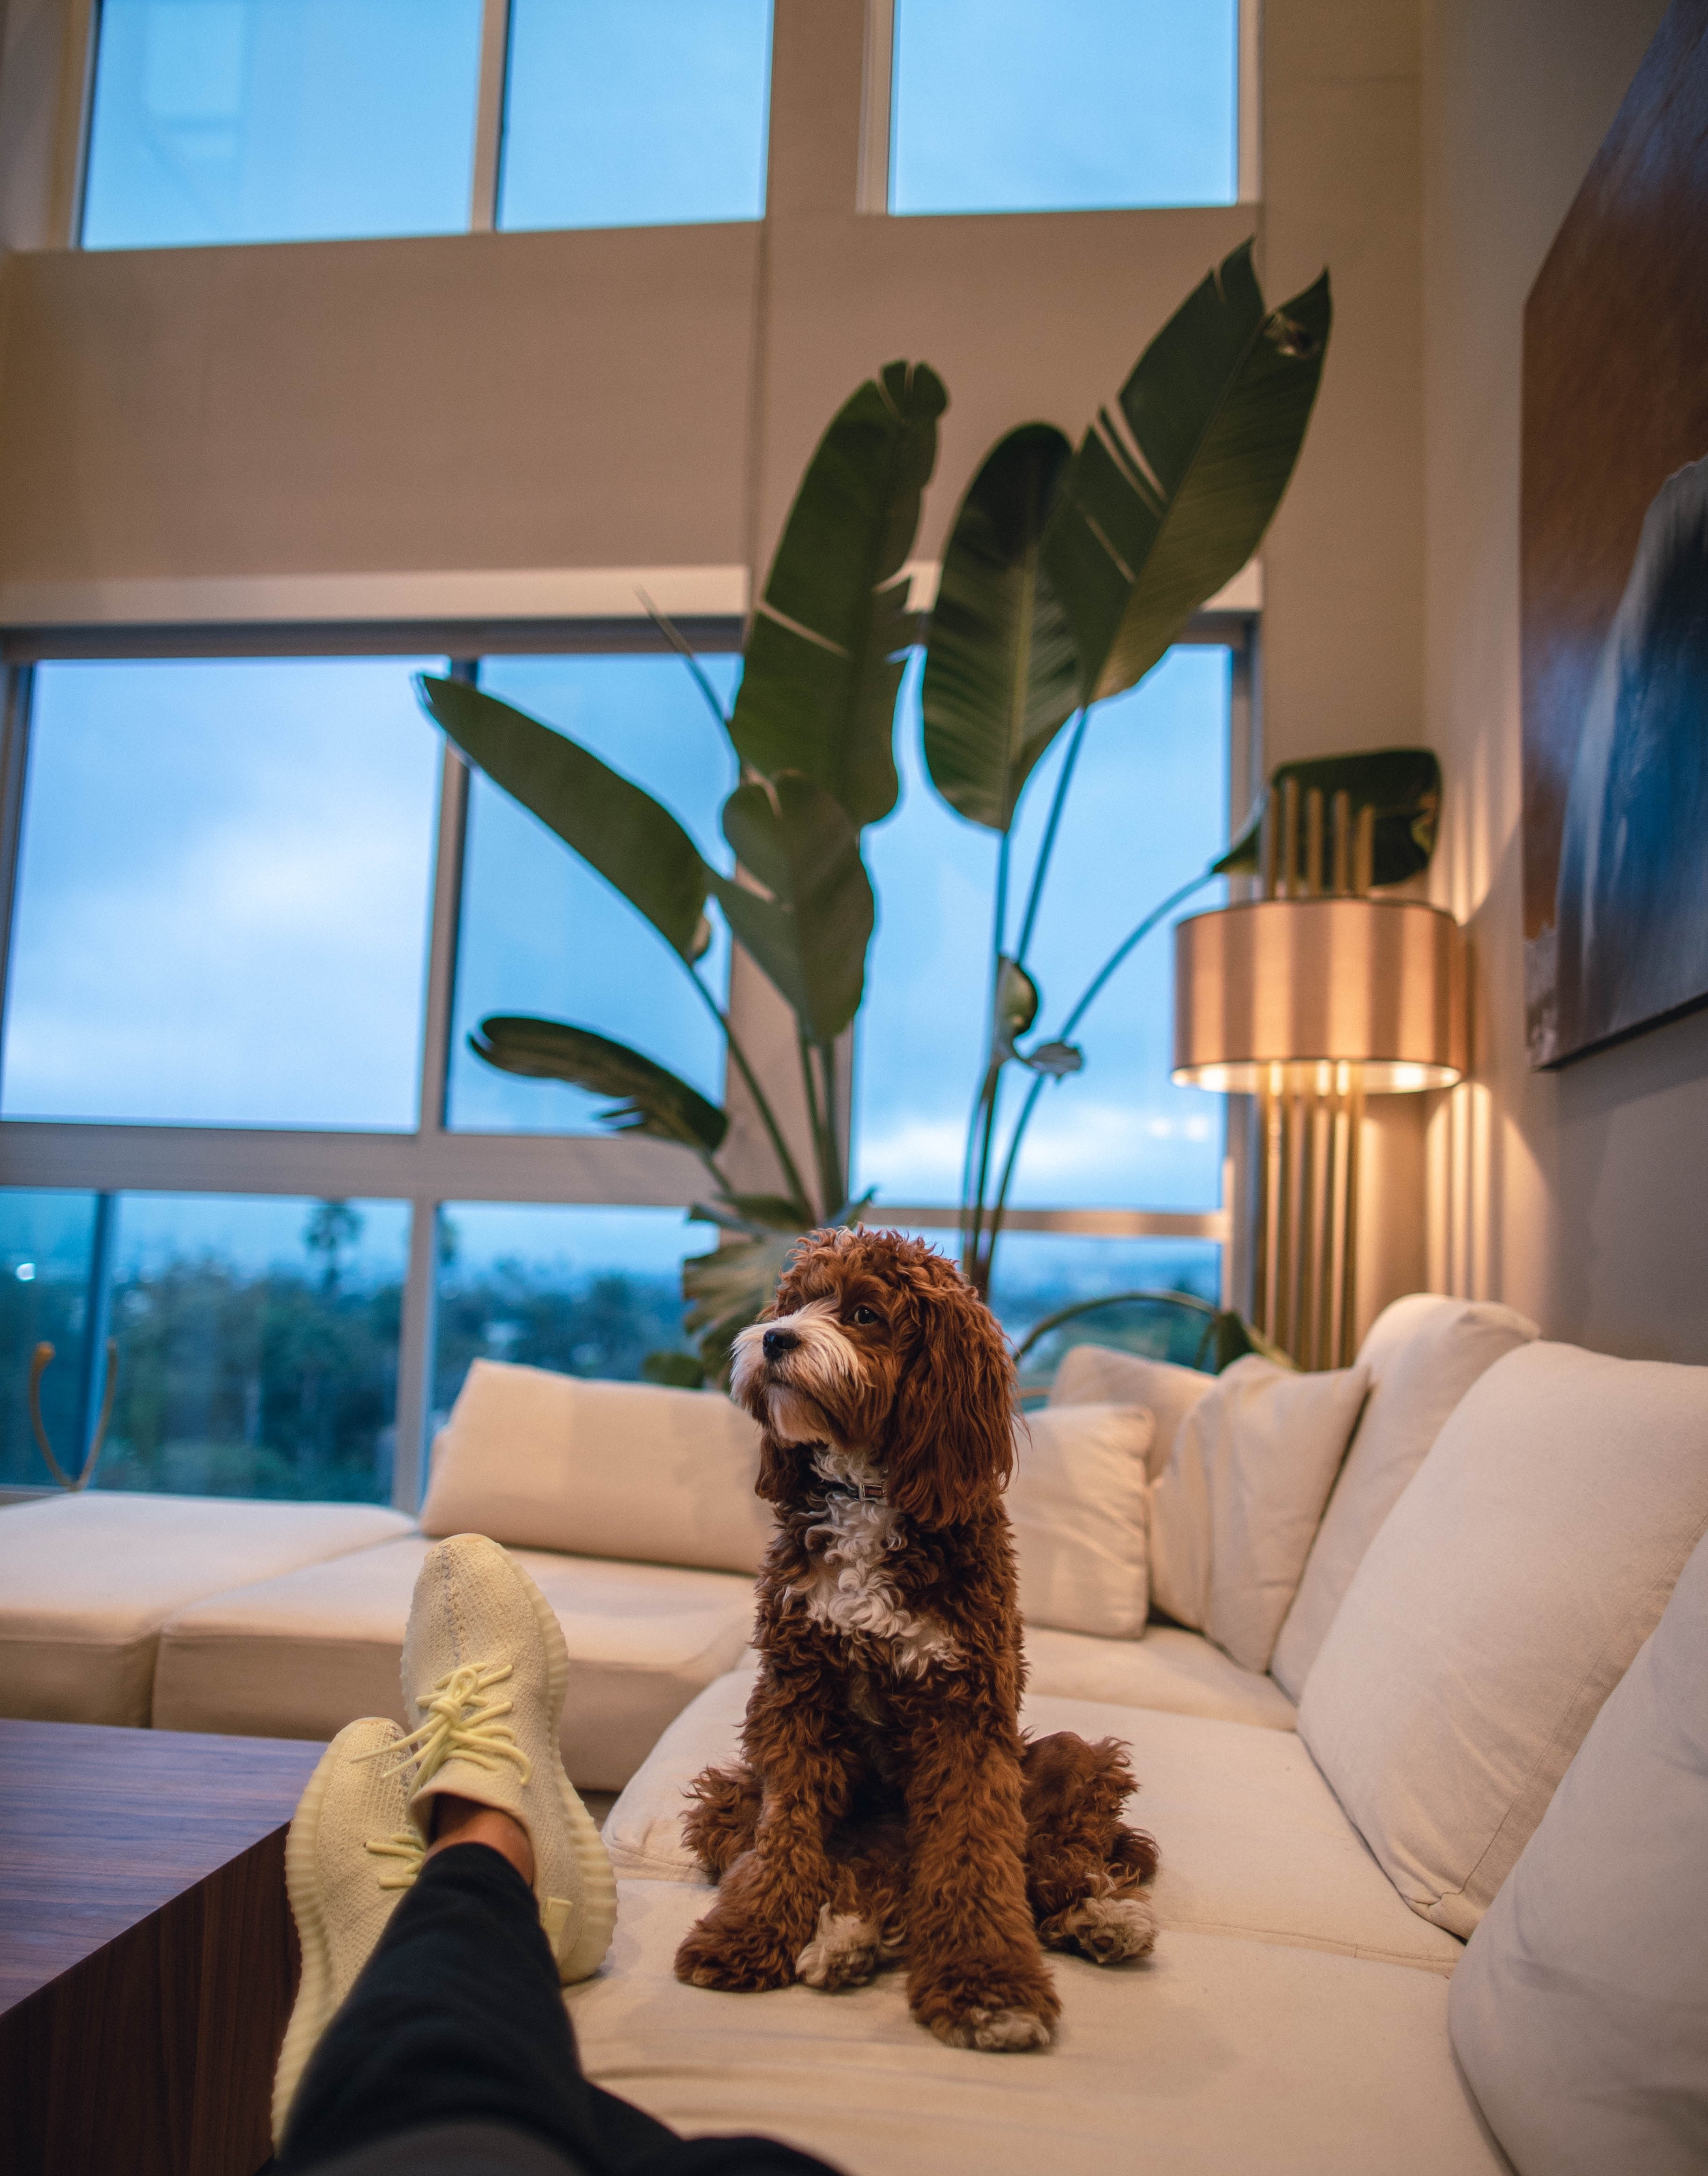 a dog on a couch in a living room with high ceilings and big windows